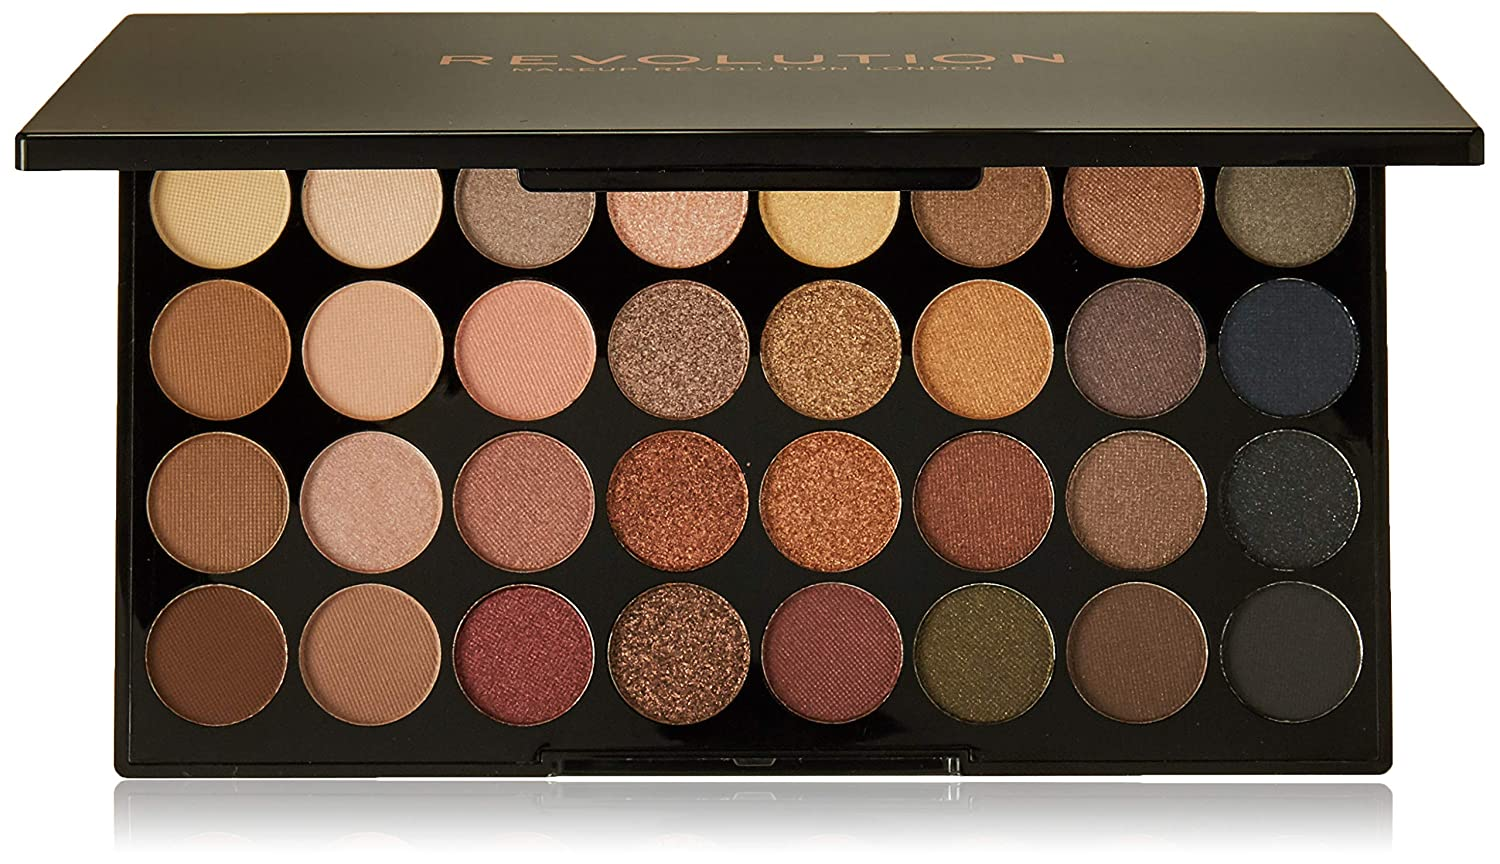 Revolution Flawless Ultra 32 Shade and Awesome Eyeshadow Palette Professional Makeup